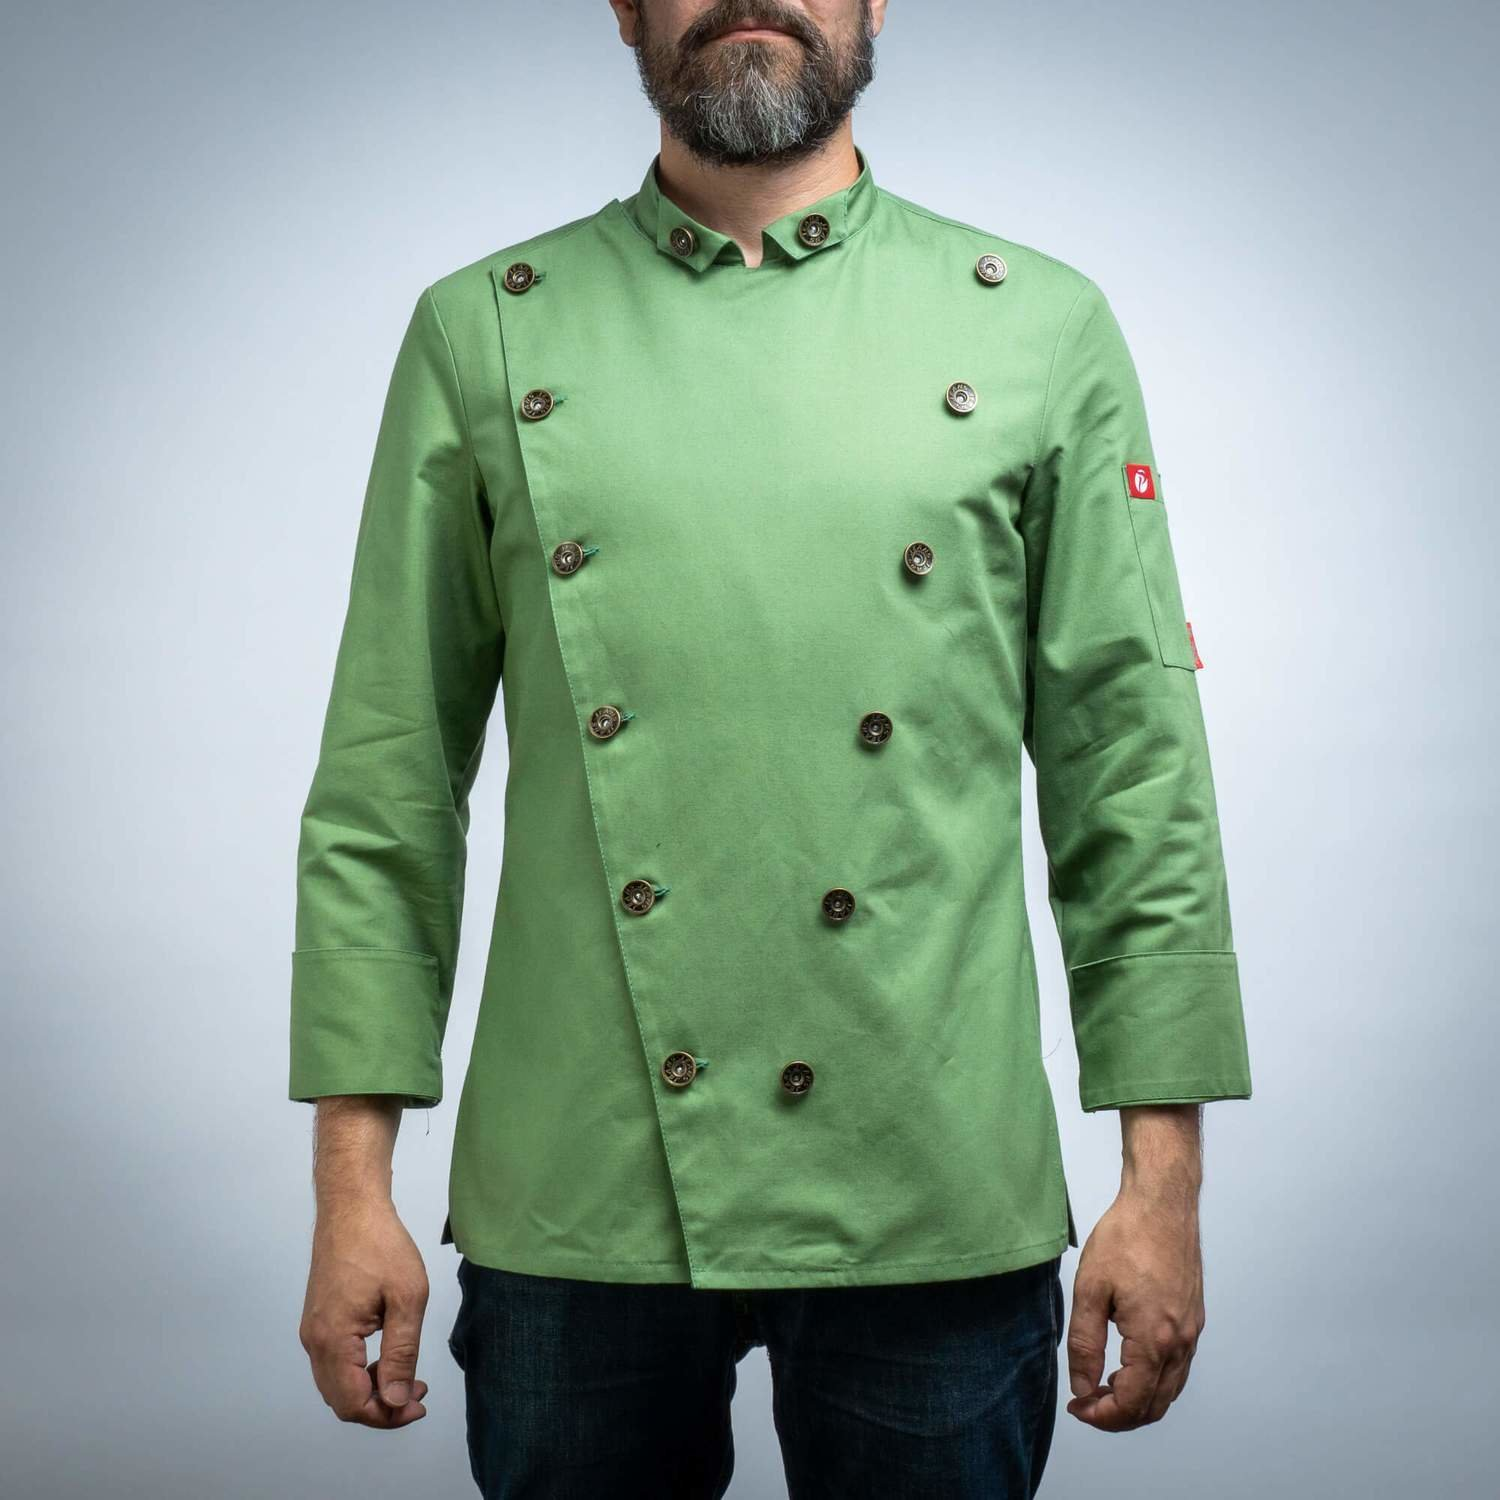 223GRASS - CHEF'S JACKET